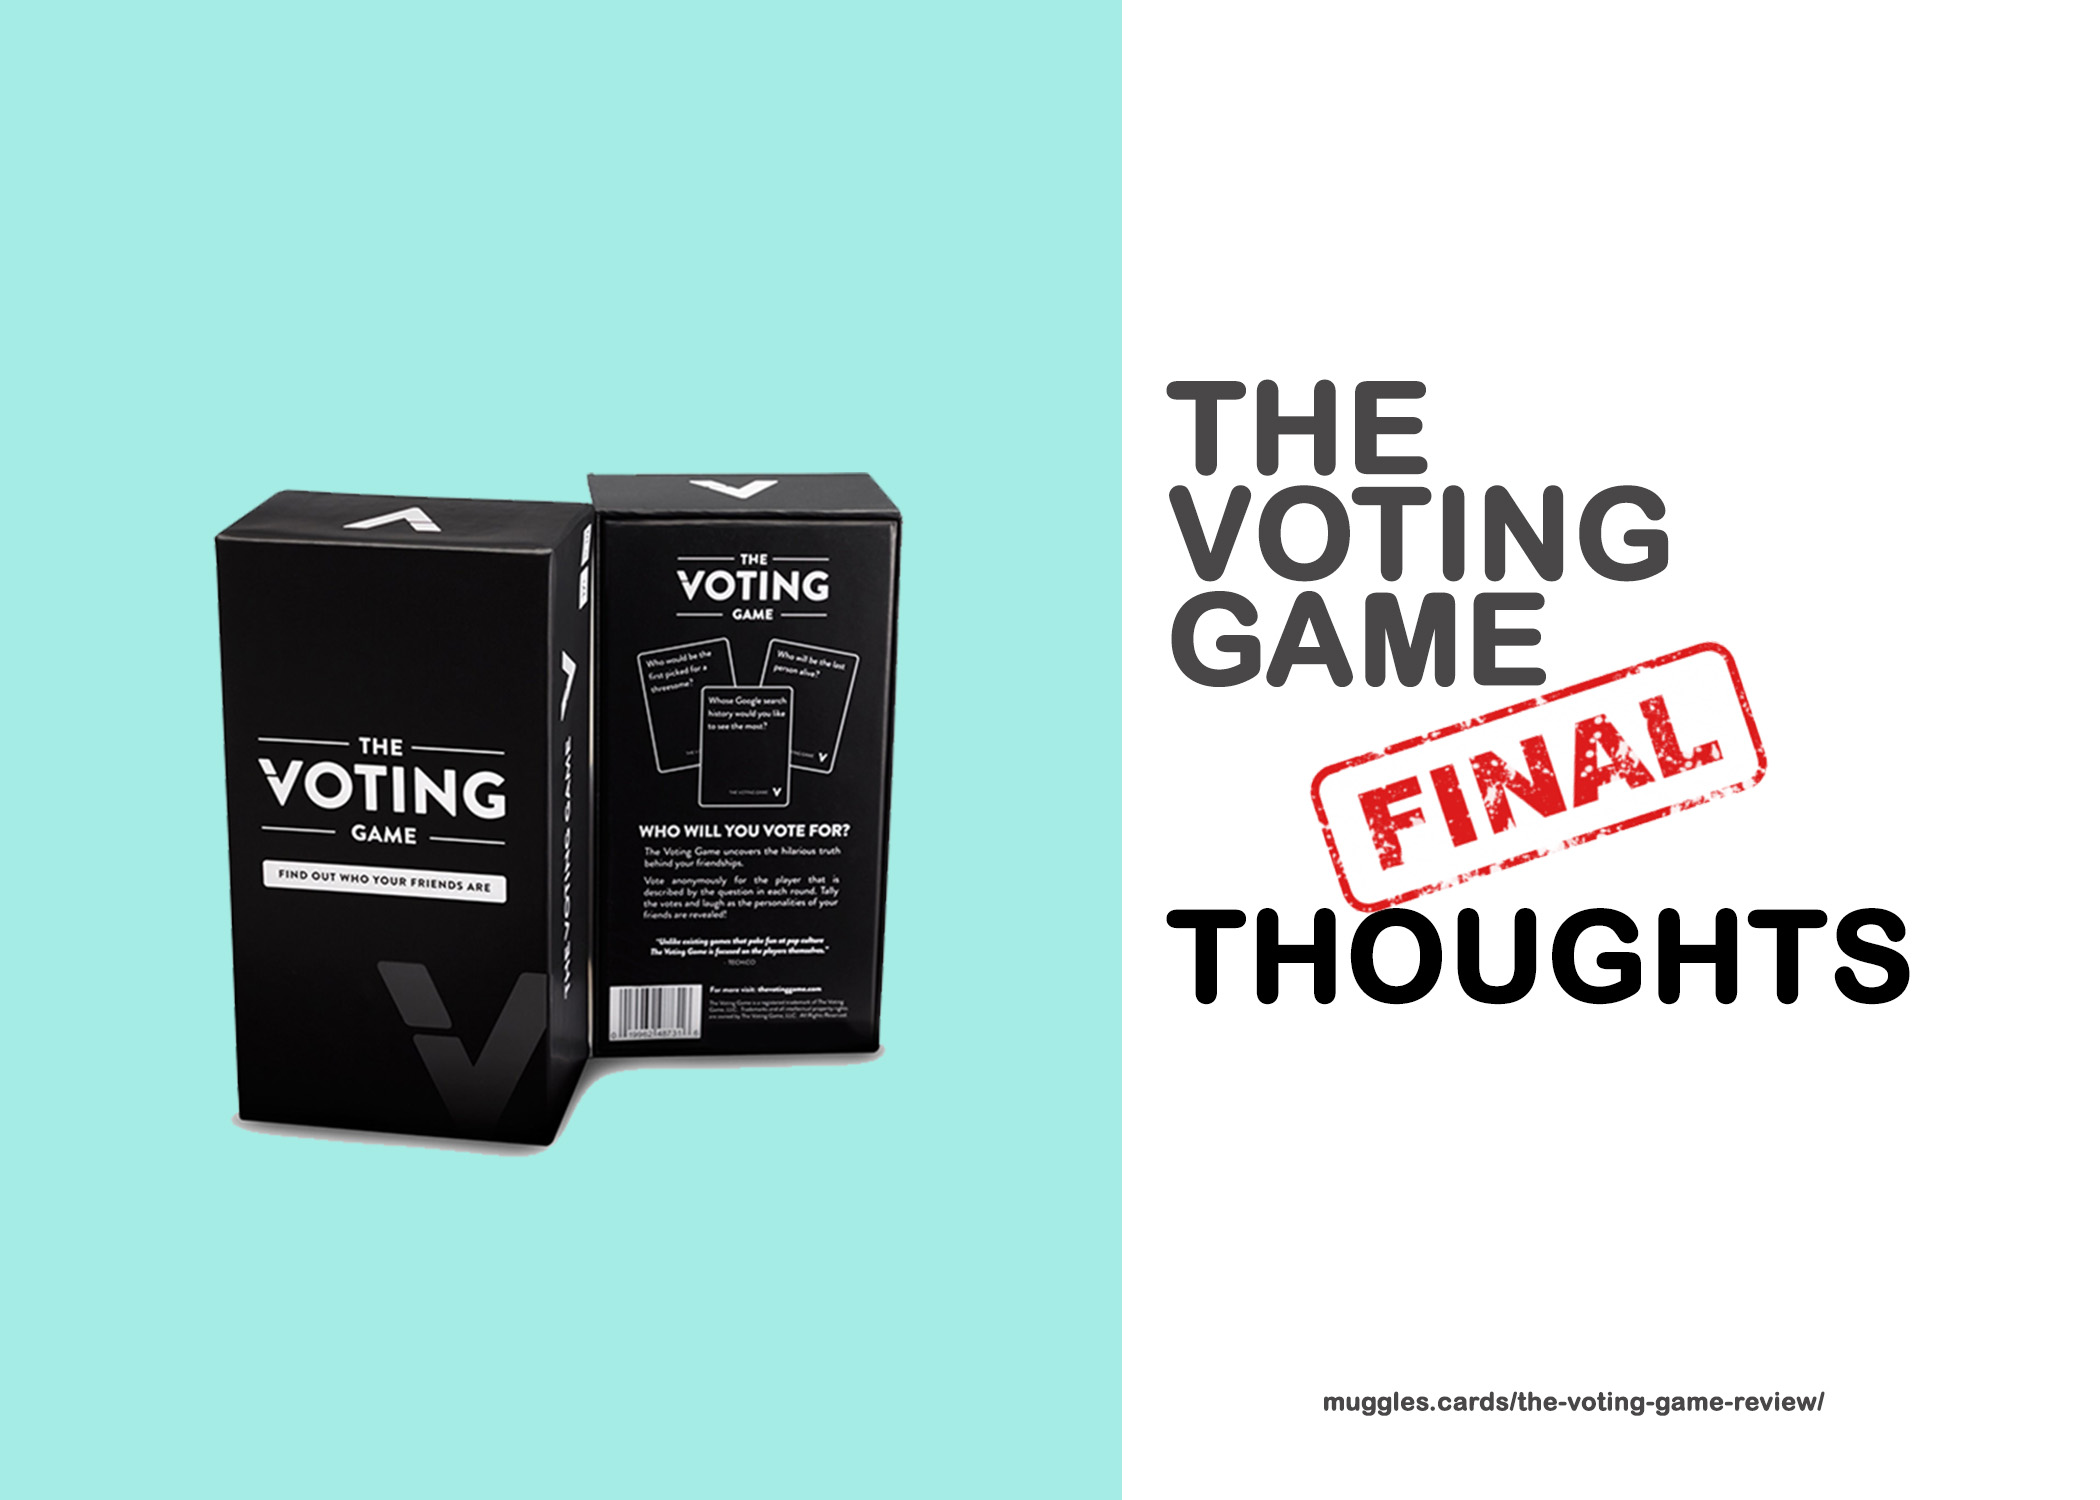 The Voting Game Final Thoughts